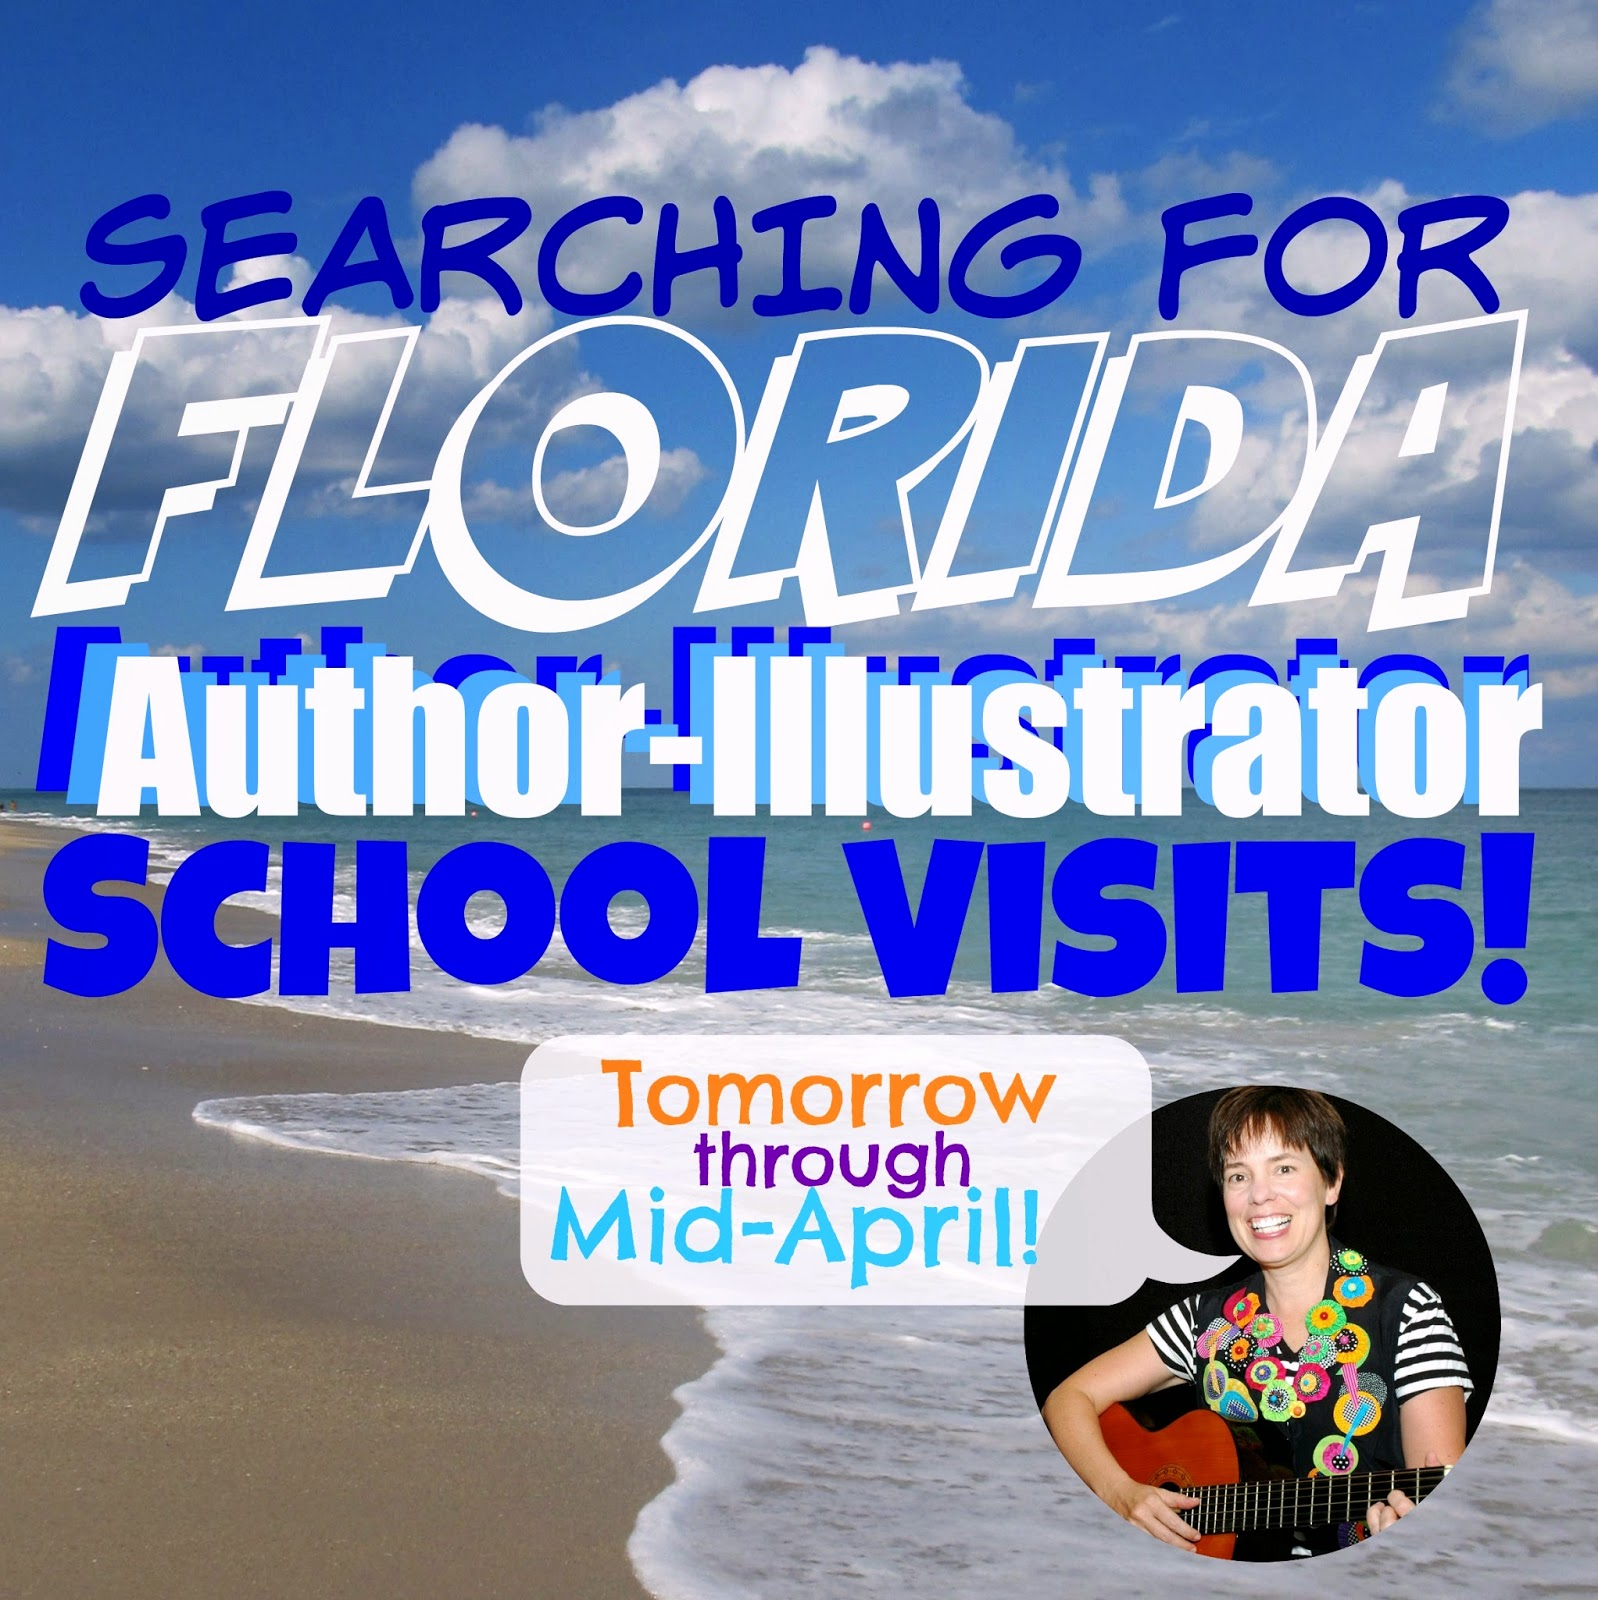 Debbie Clement is Searching for Author-Illustrator School Visits in Florida